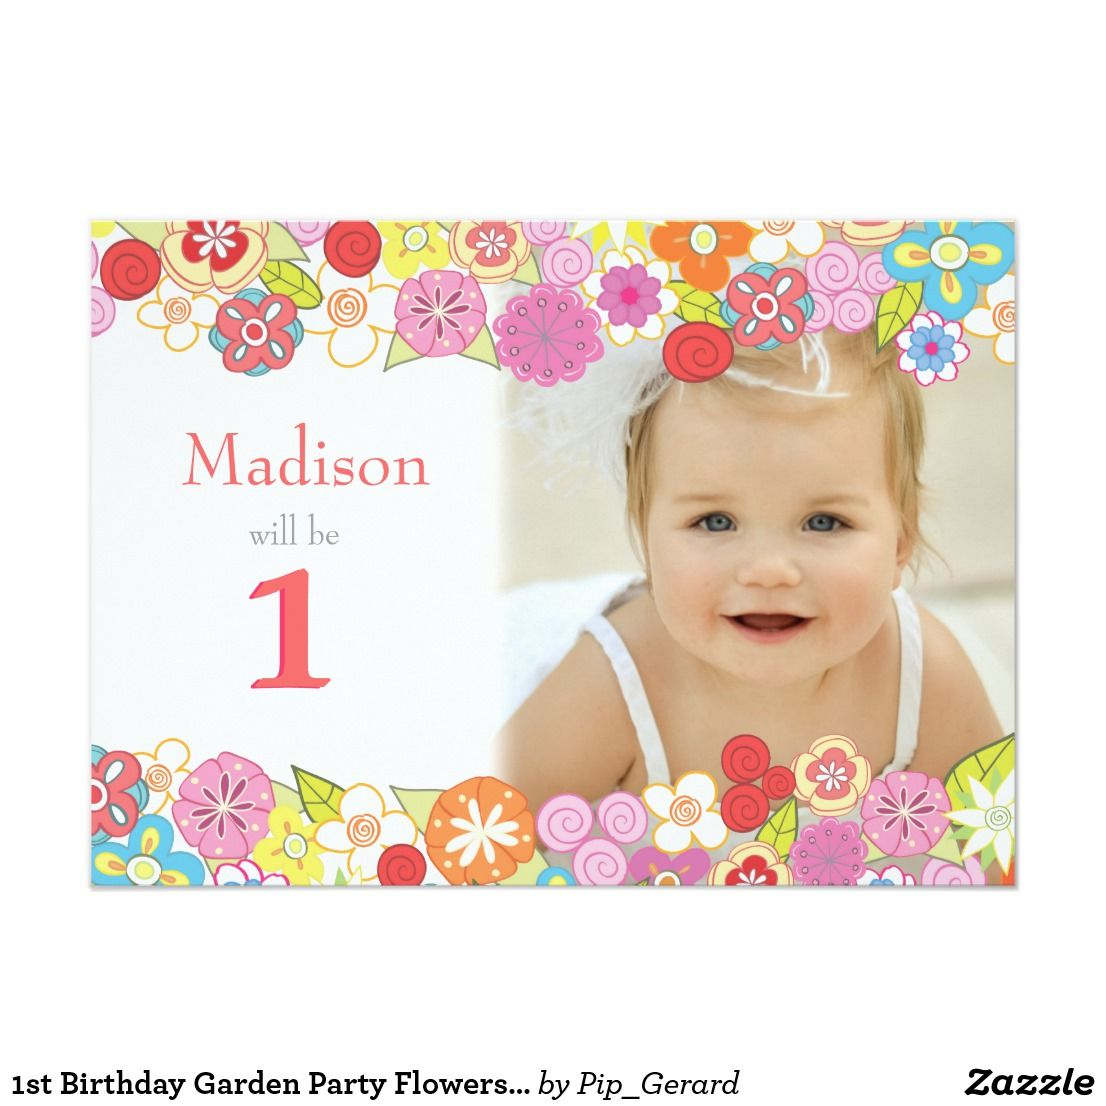 1st Birthday Garden Party Flowers Photo Invitation The Fabulous Photography used in this Modern full bleed save the date Photo Template (with permission) is ...